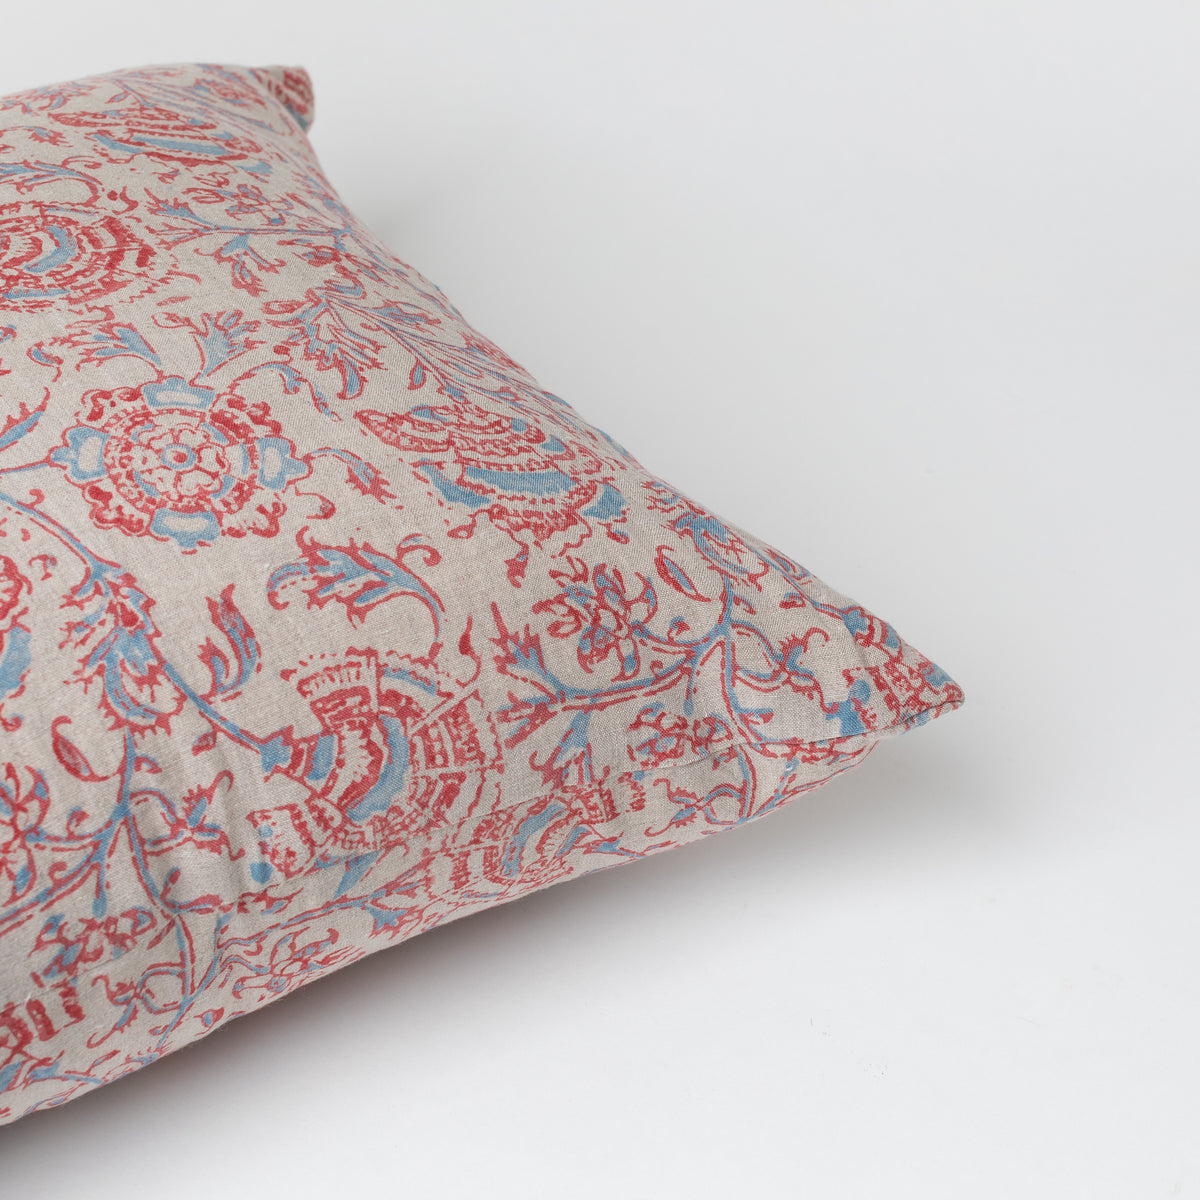 Load image into Gallery viewer, Shenaz Vintage Red and Blue Pillow - Pillows - Designer – Shoppe Amber Interiors